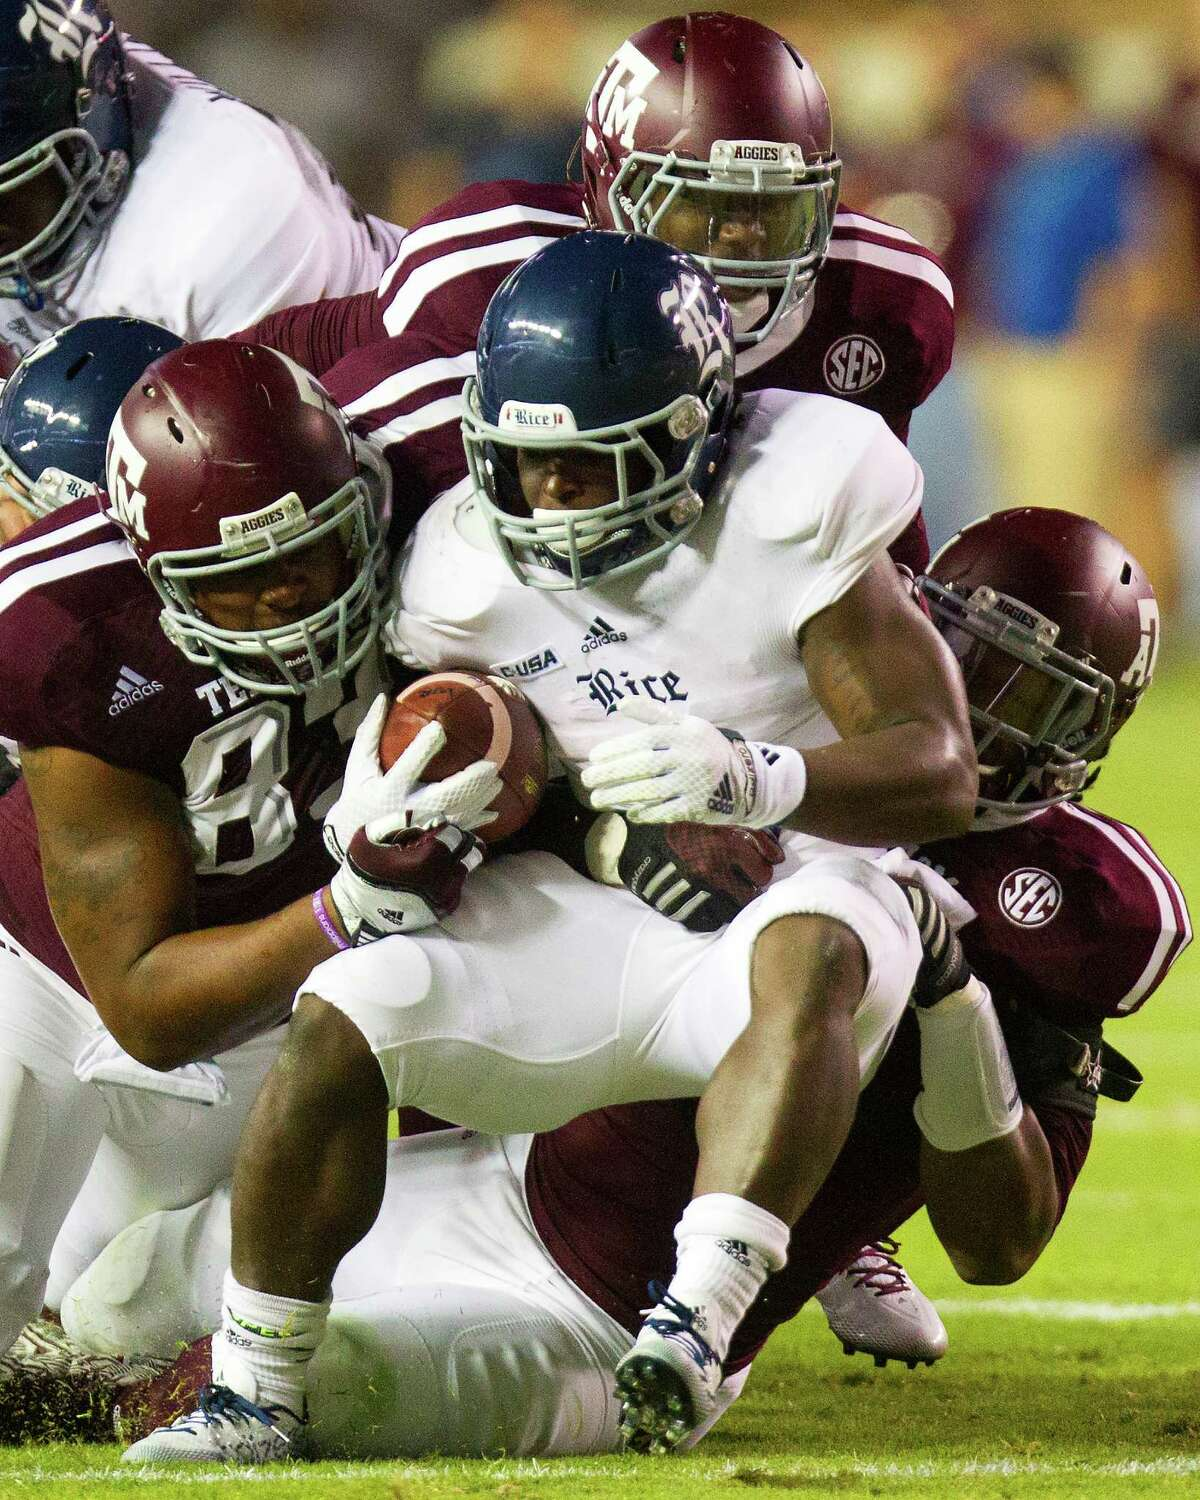 Sophomore Jowan Davis had to work hard for his 86 yards on 23 carries against Texas A&M, part of a 240-yard rushing night for Rice against the seventh-ranked Aggies.